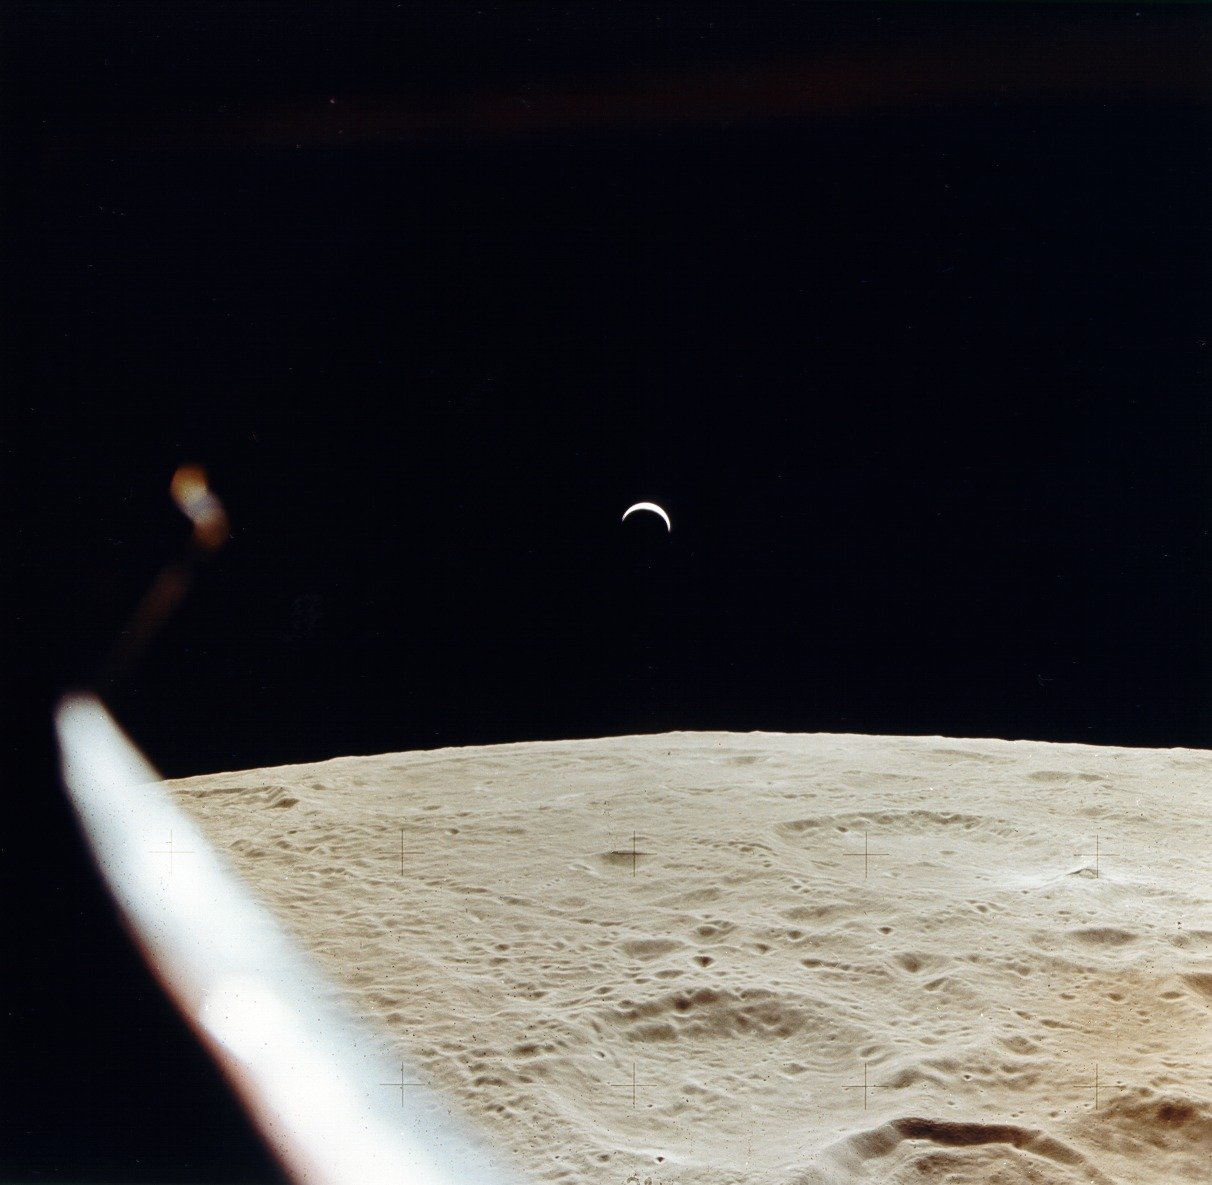 earthrise from moon apollo - photo #28